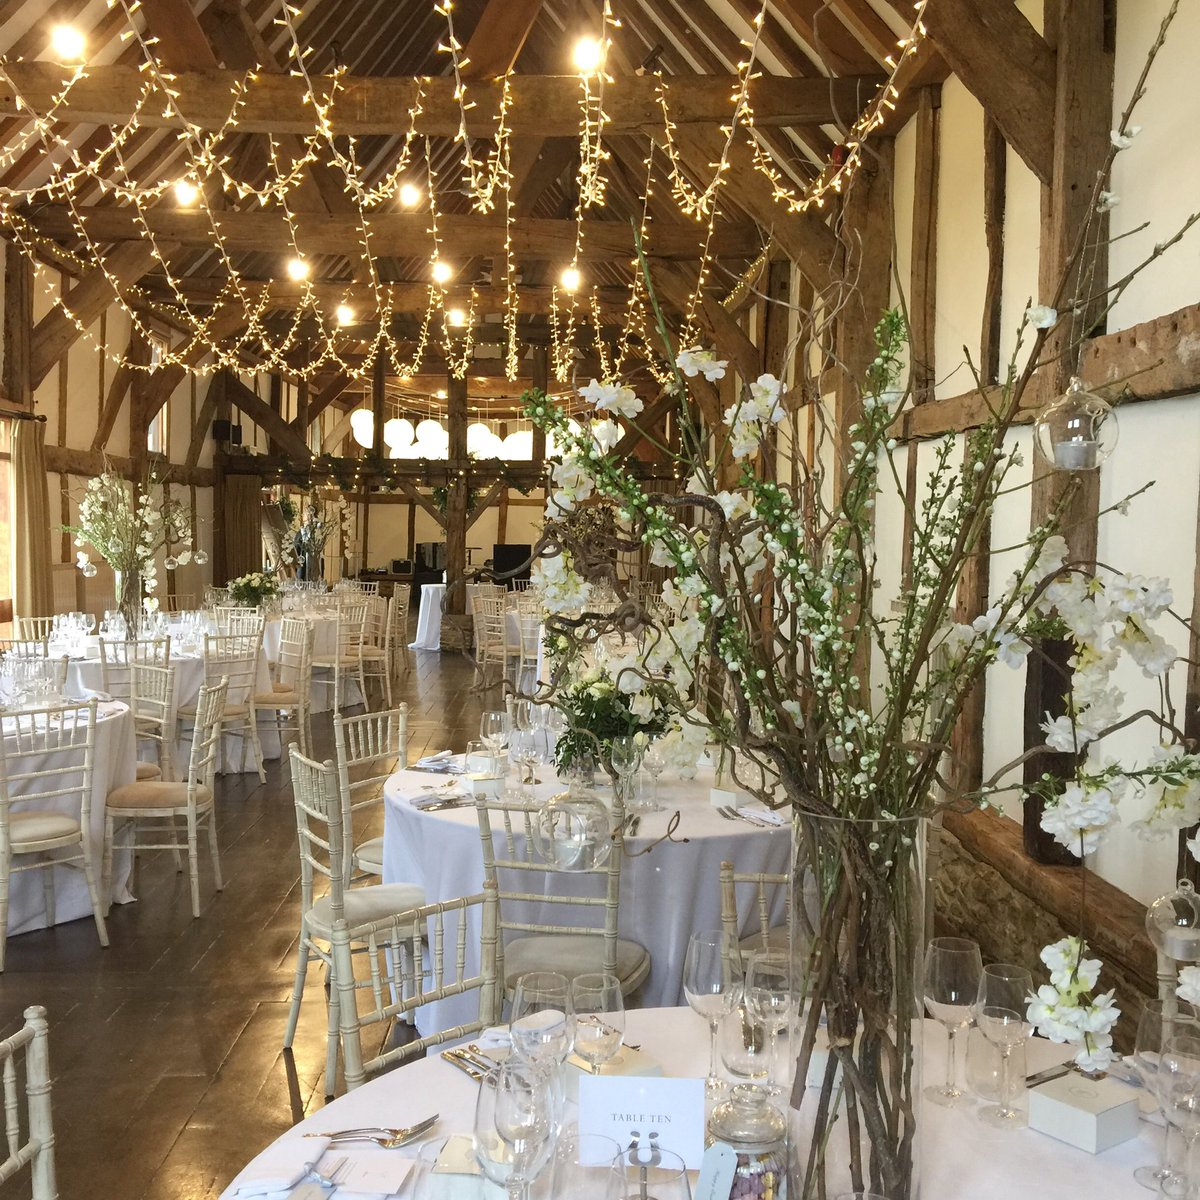 Pretty Spring blossoms set the scene. We all need a reminder that Winter is over! @edenblooms @Loseleyevents @OakwoodEventsUK